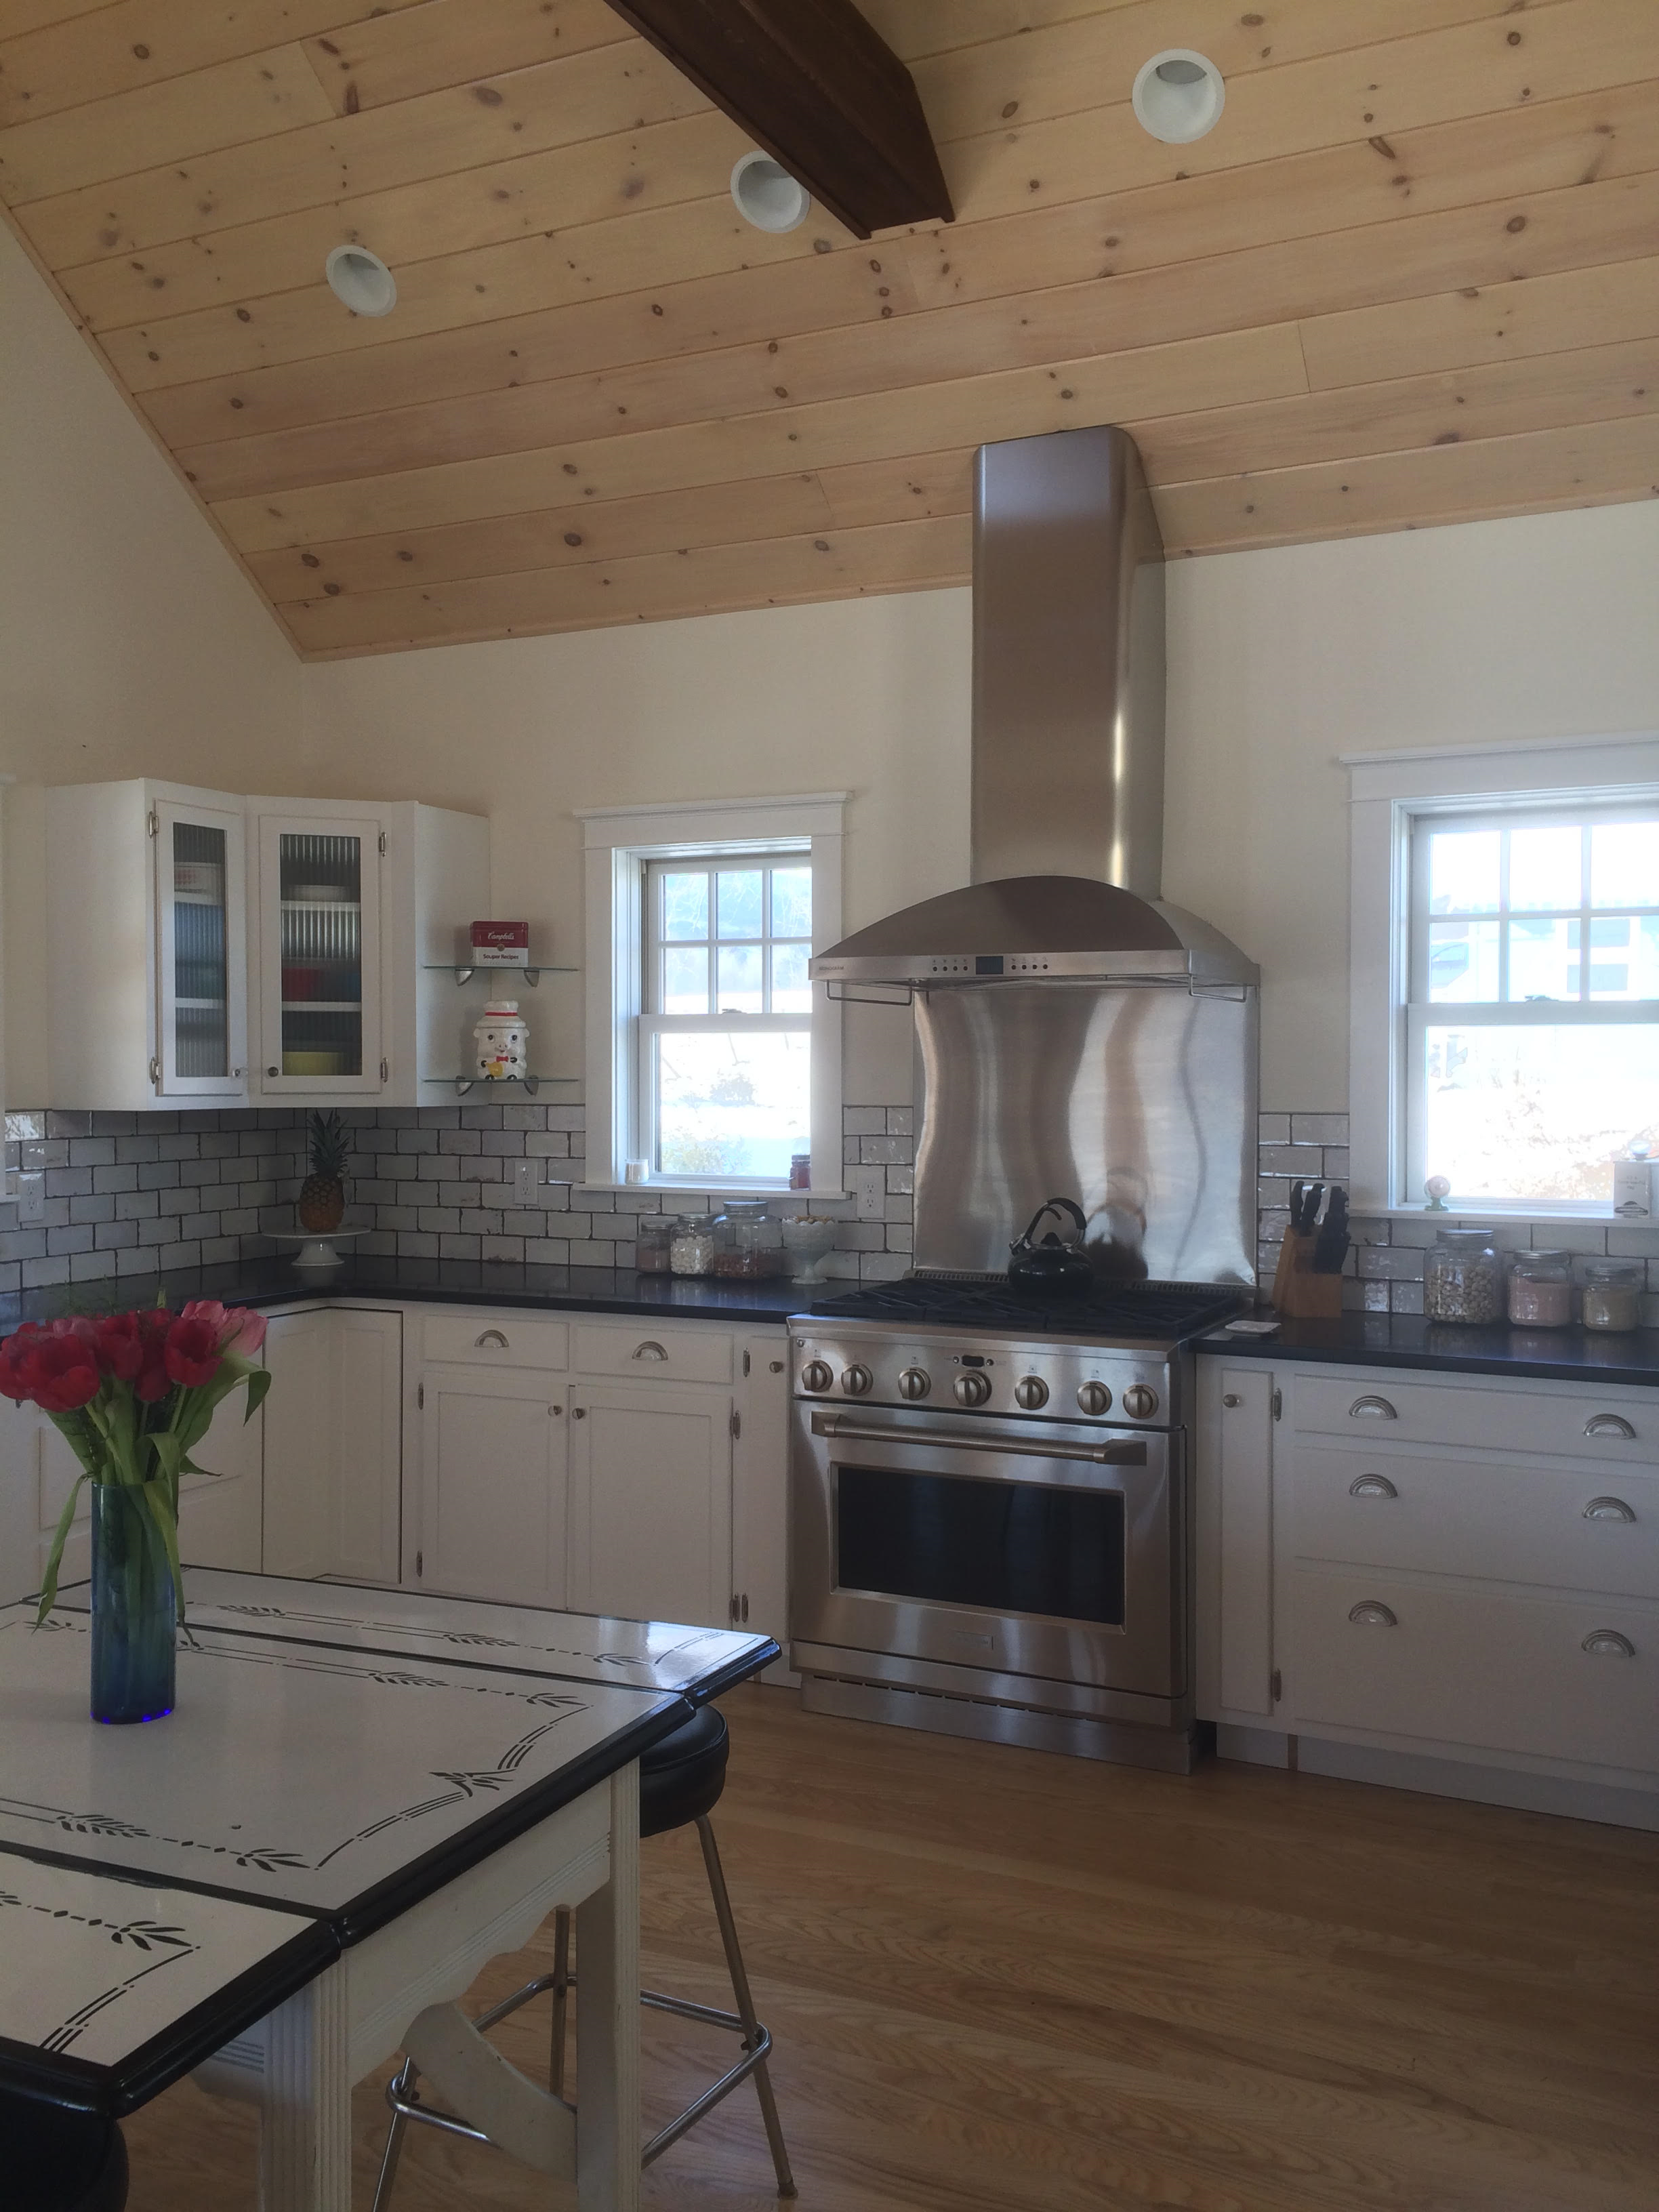 Recent kitchen addition to our 1890s home in upstate ny vaulted recent kitchen addition to our 1890s home in upstate ny vaulted wood ceiling distressed dailygadgetfo Choice Image